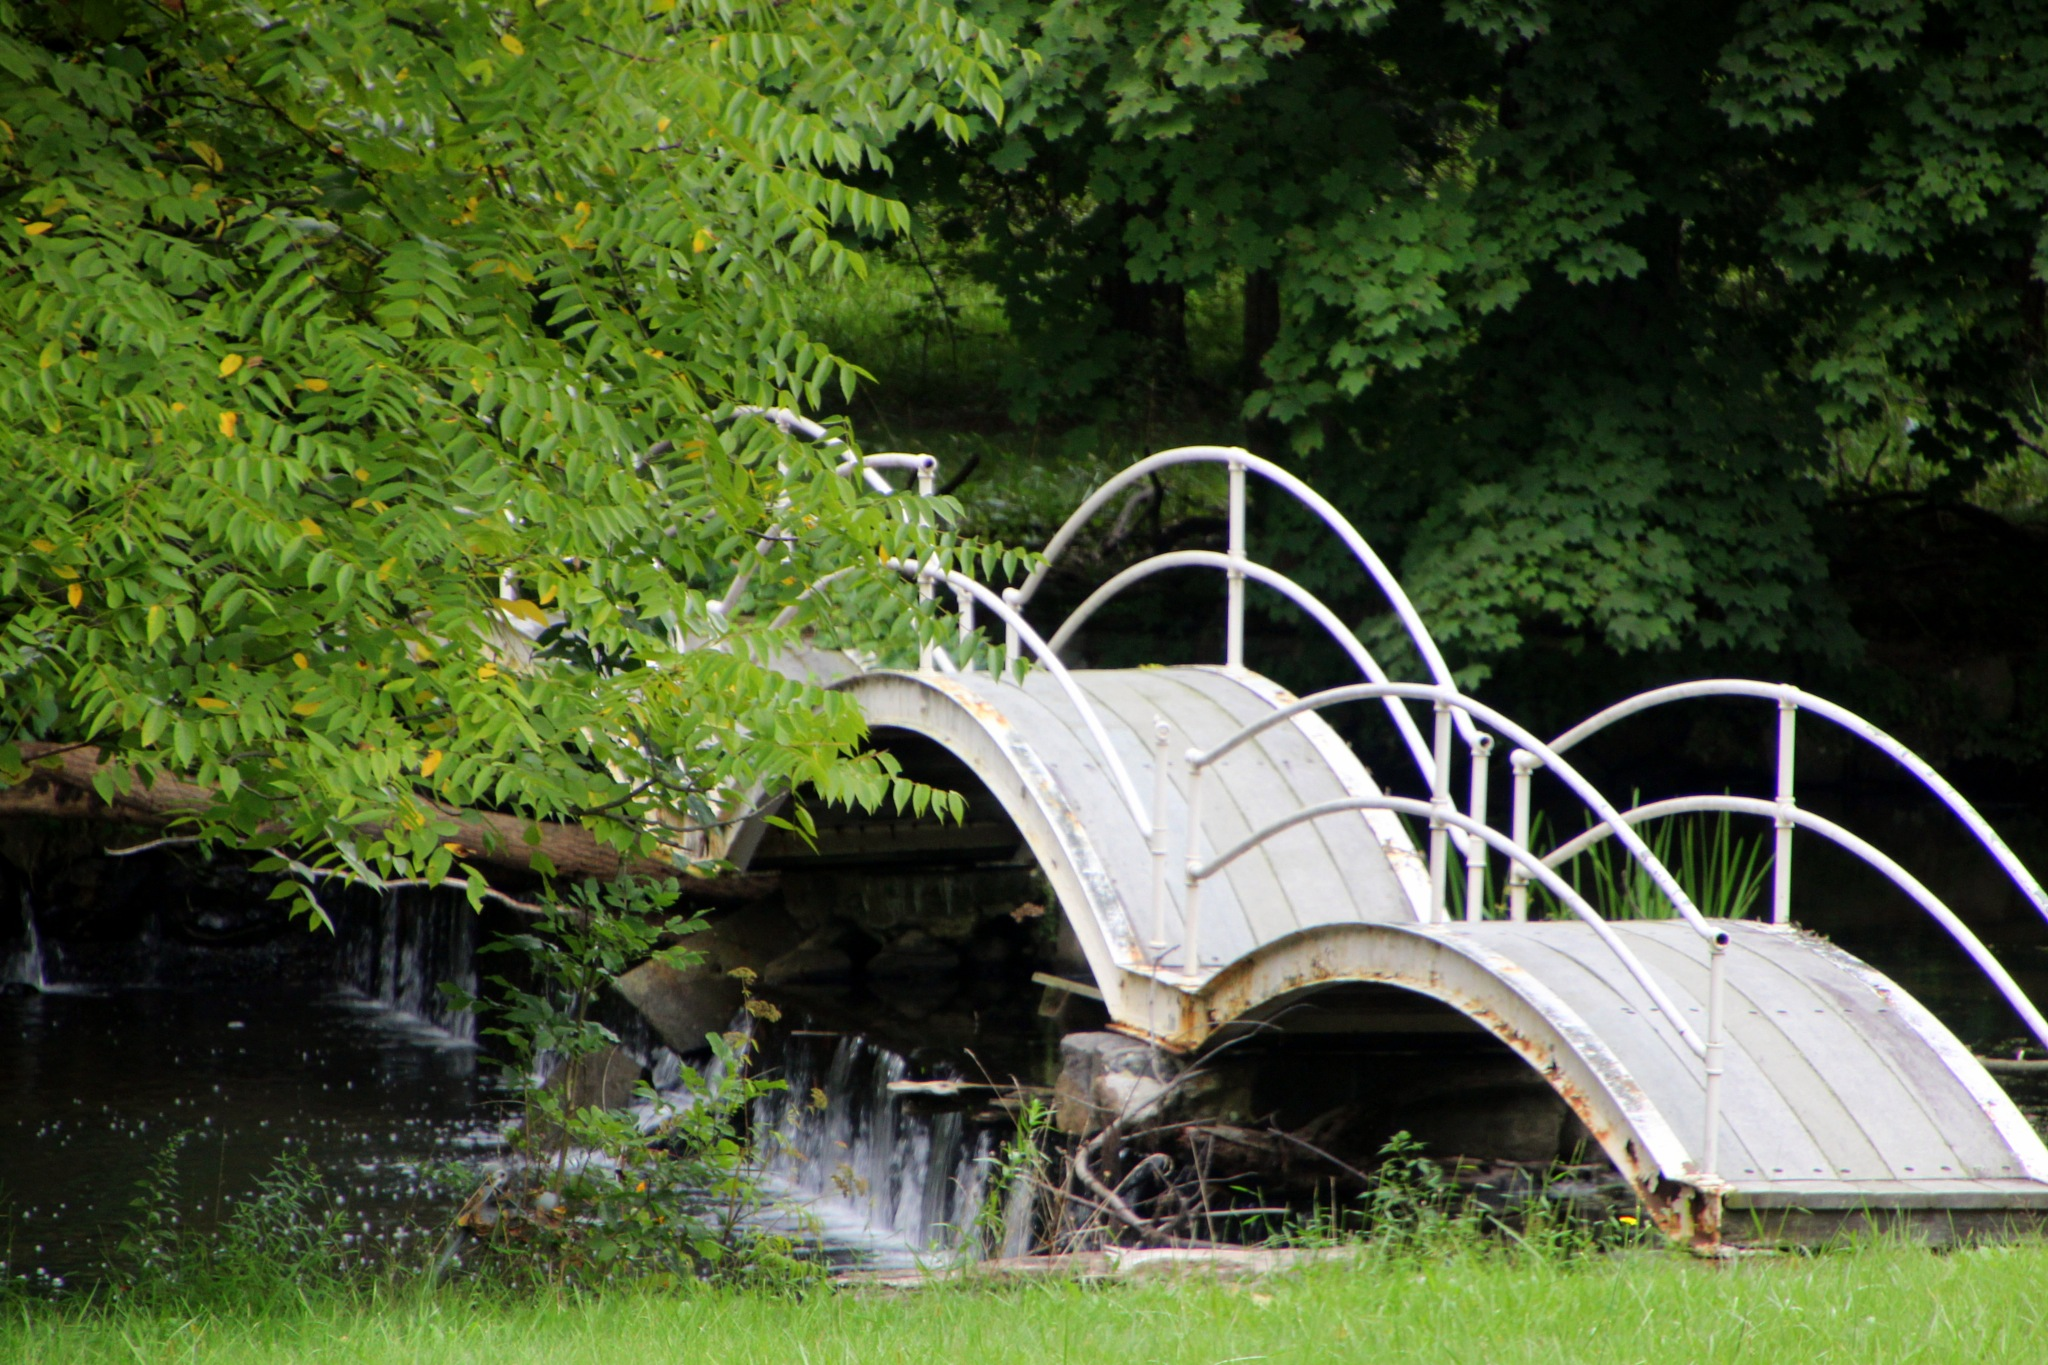 Bridge over a stream by Janet519